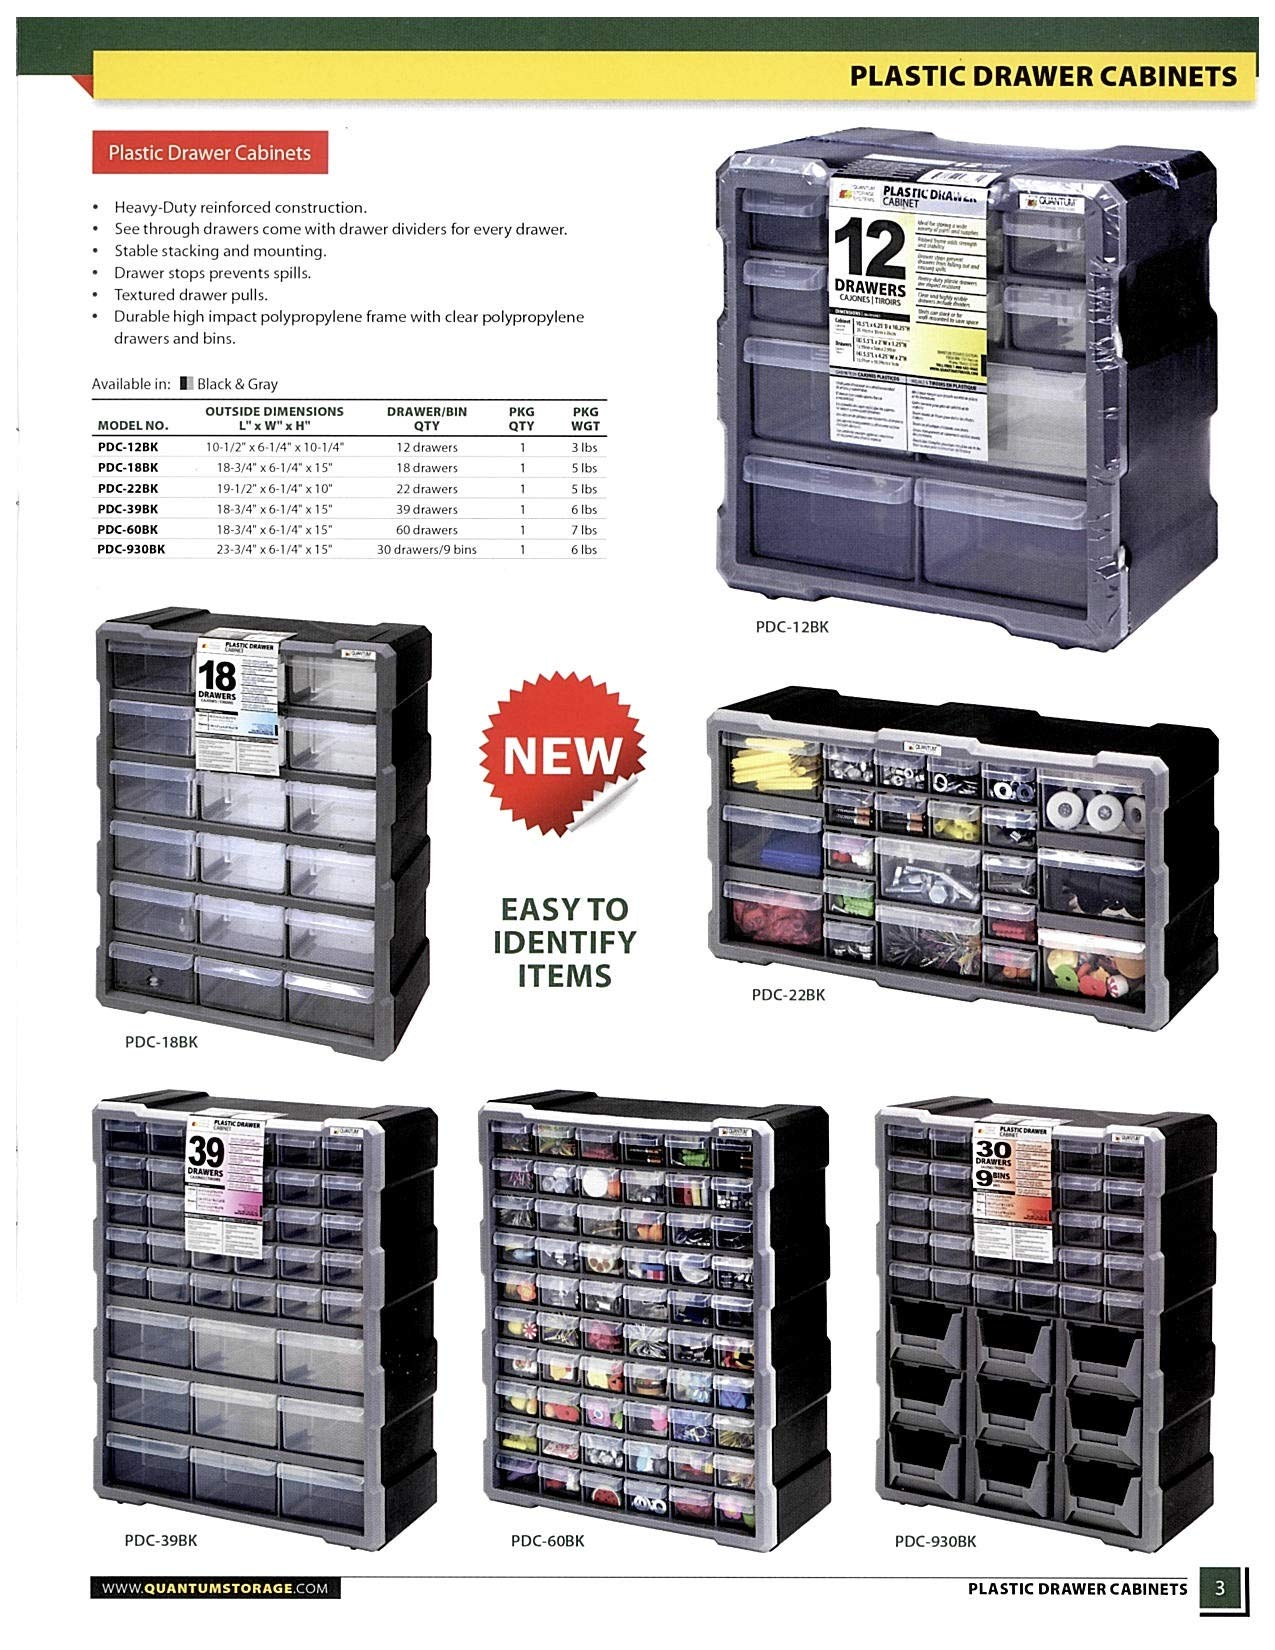 Quantum Storage Systems PDC-22BK Clear Plastic Drawer Cabinet, 22 Drawers